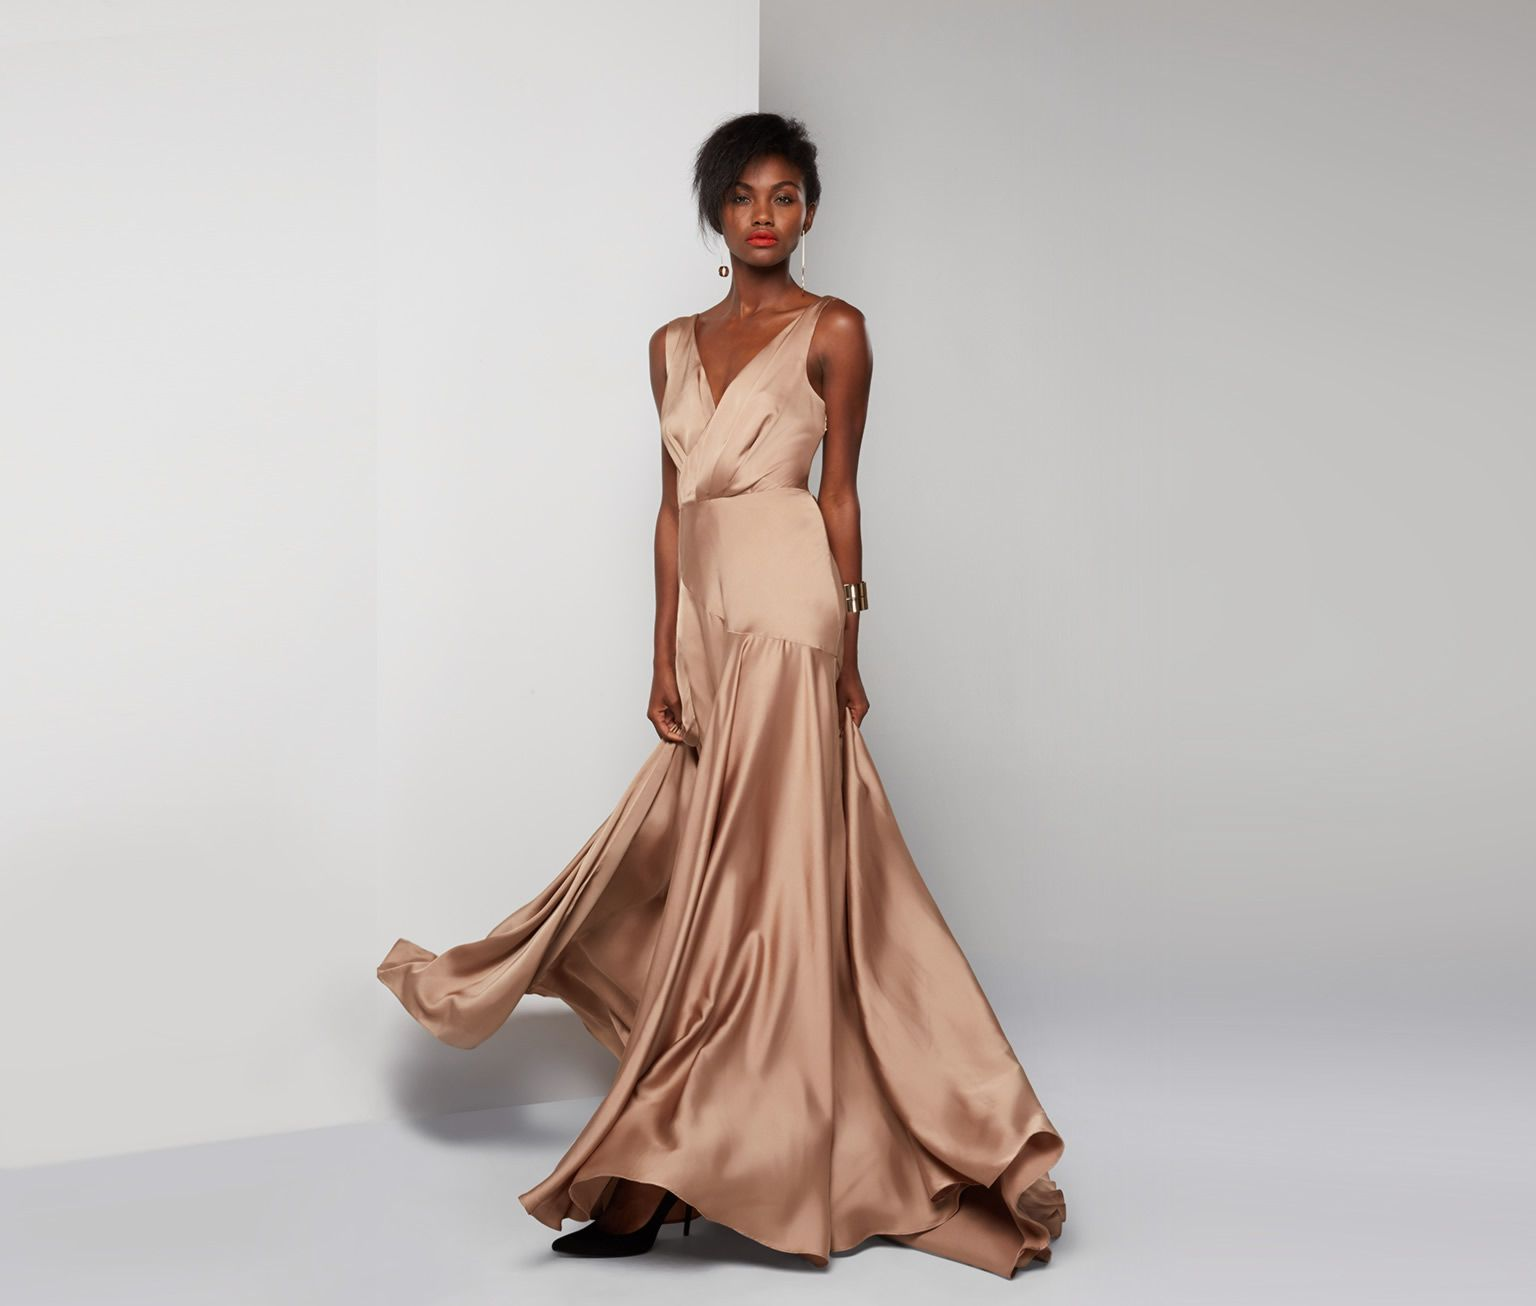 Design your own wedding dress near me  Fame  Partners Escala  Made to fit  customizable  Ivy